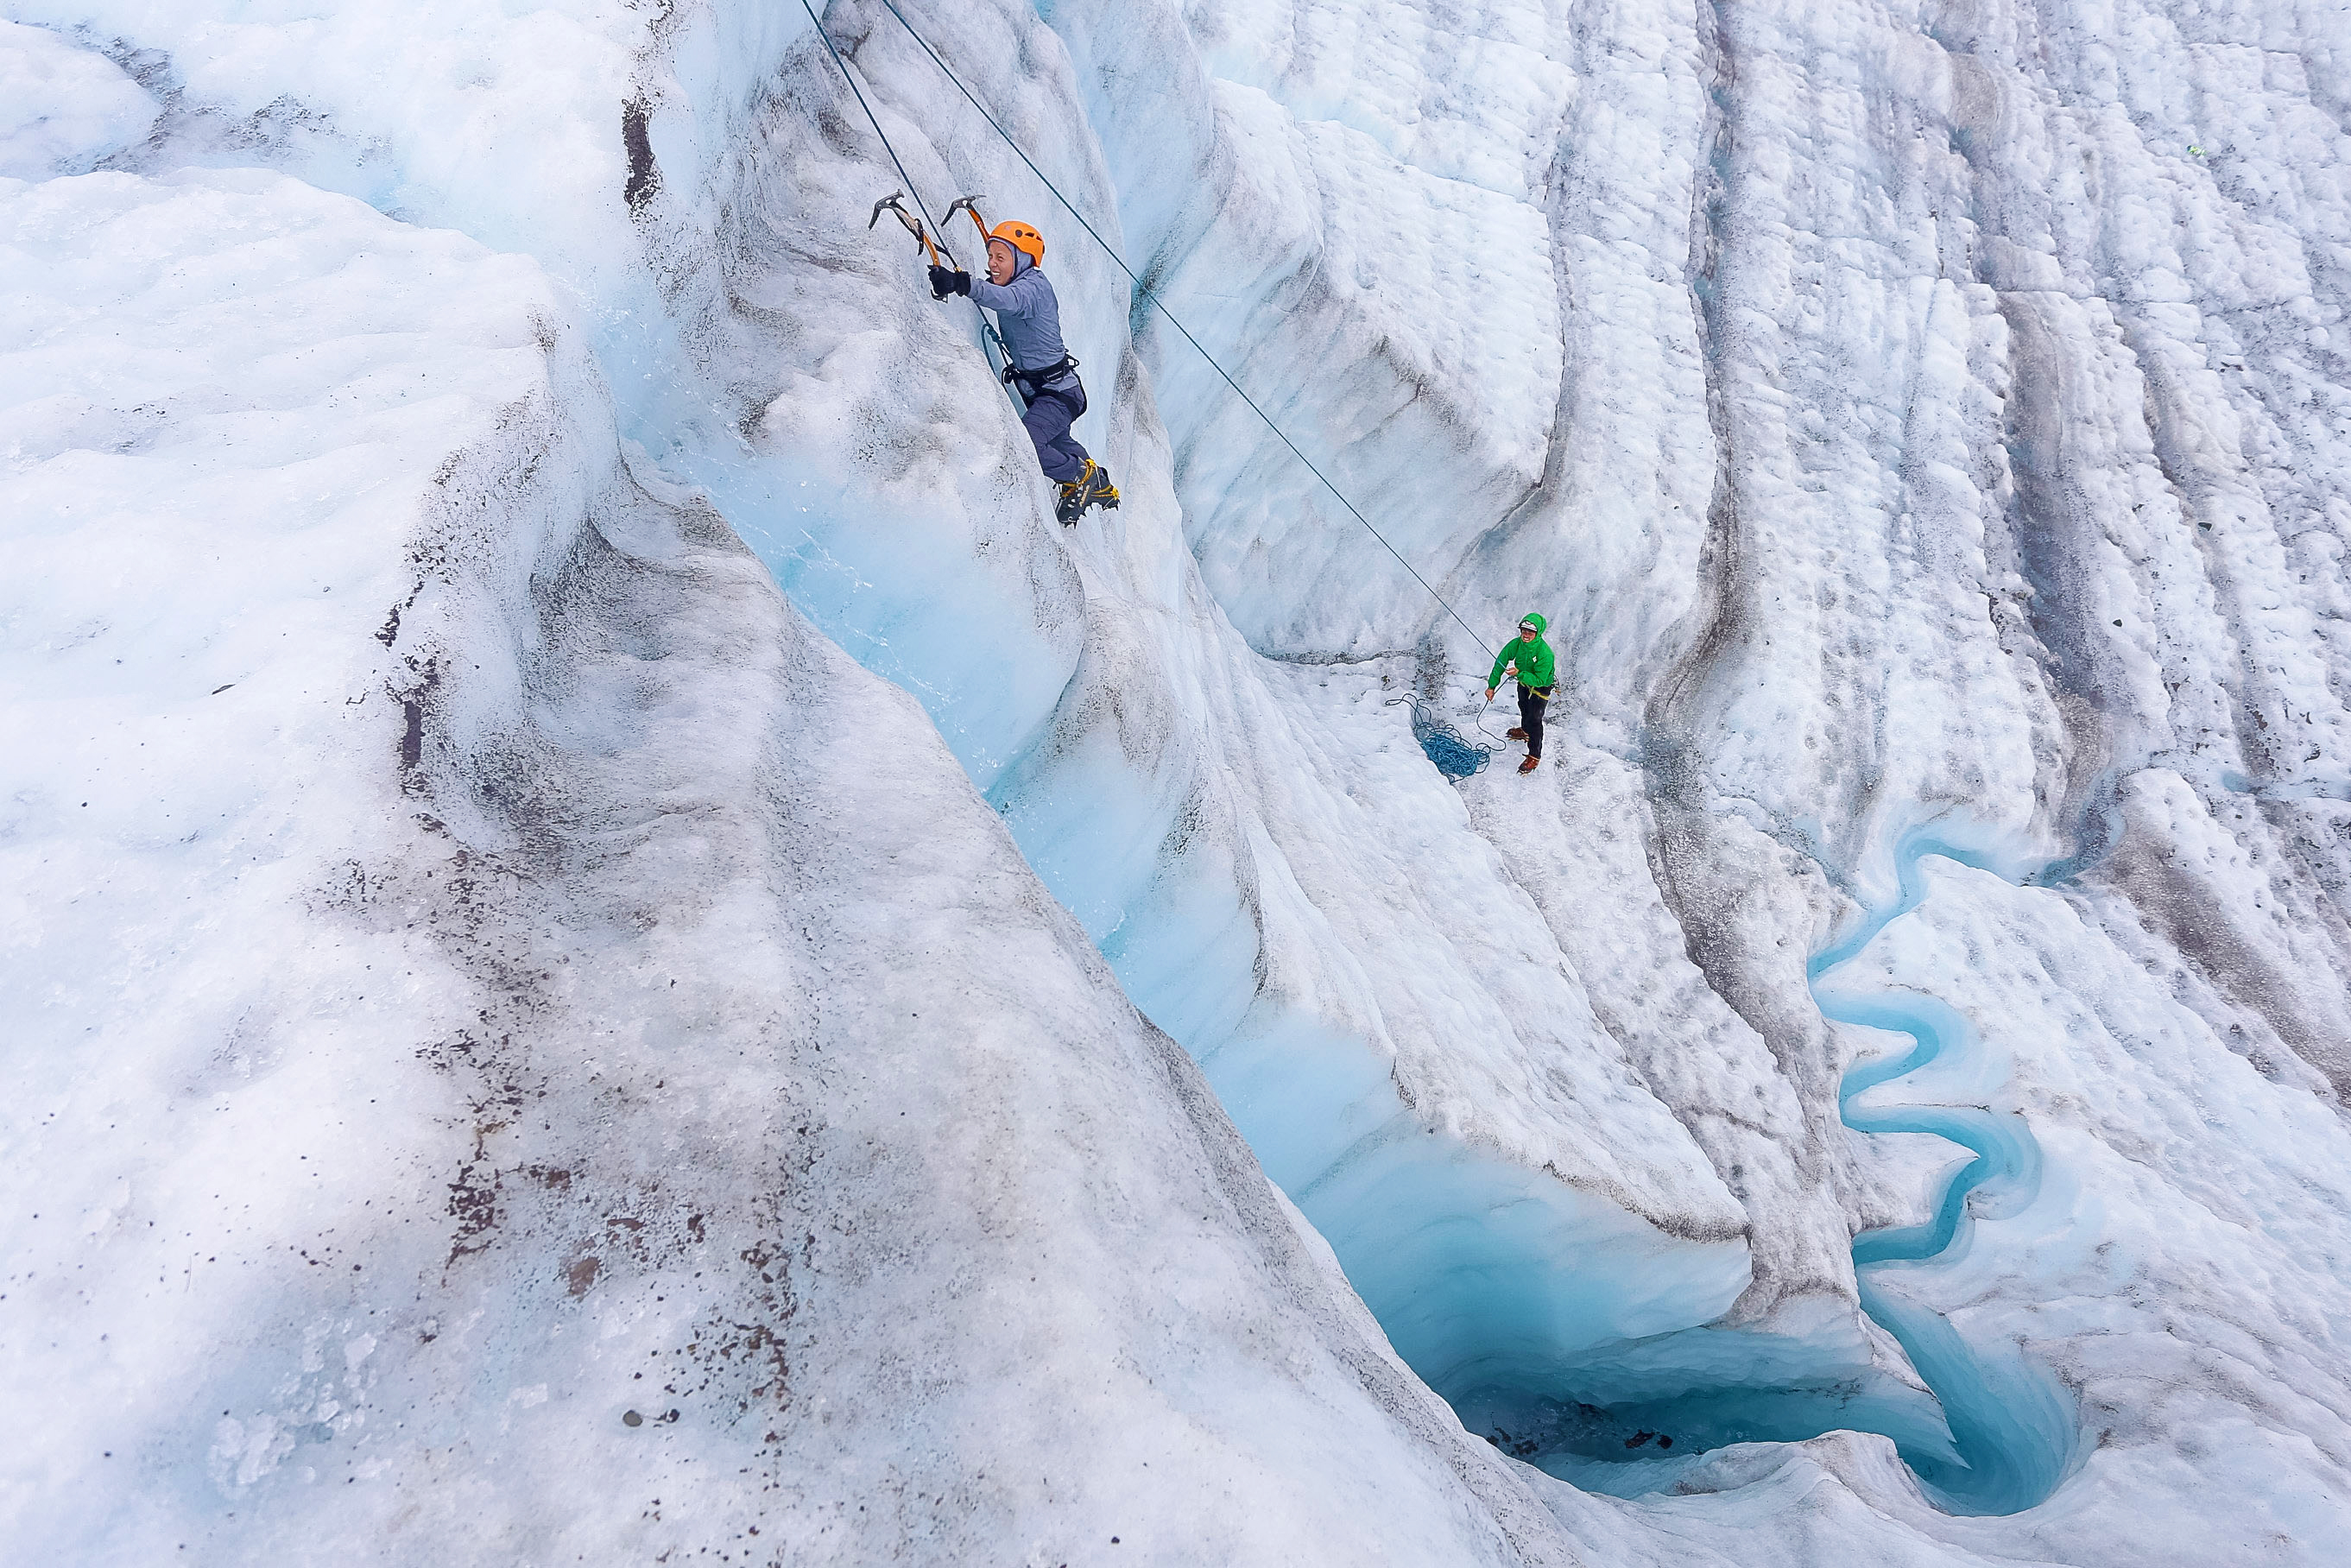 ice climbing in Wrangell-St. Elias National Park in Alaska